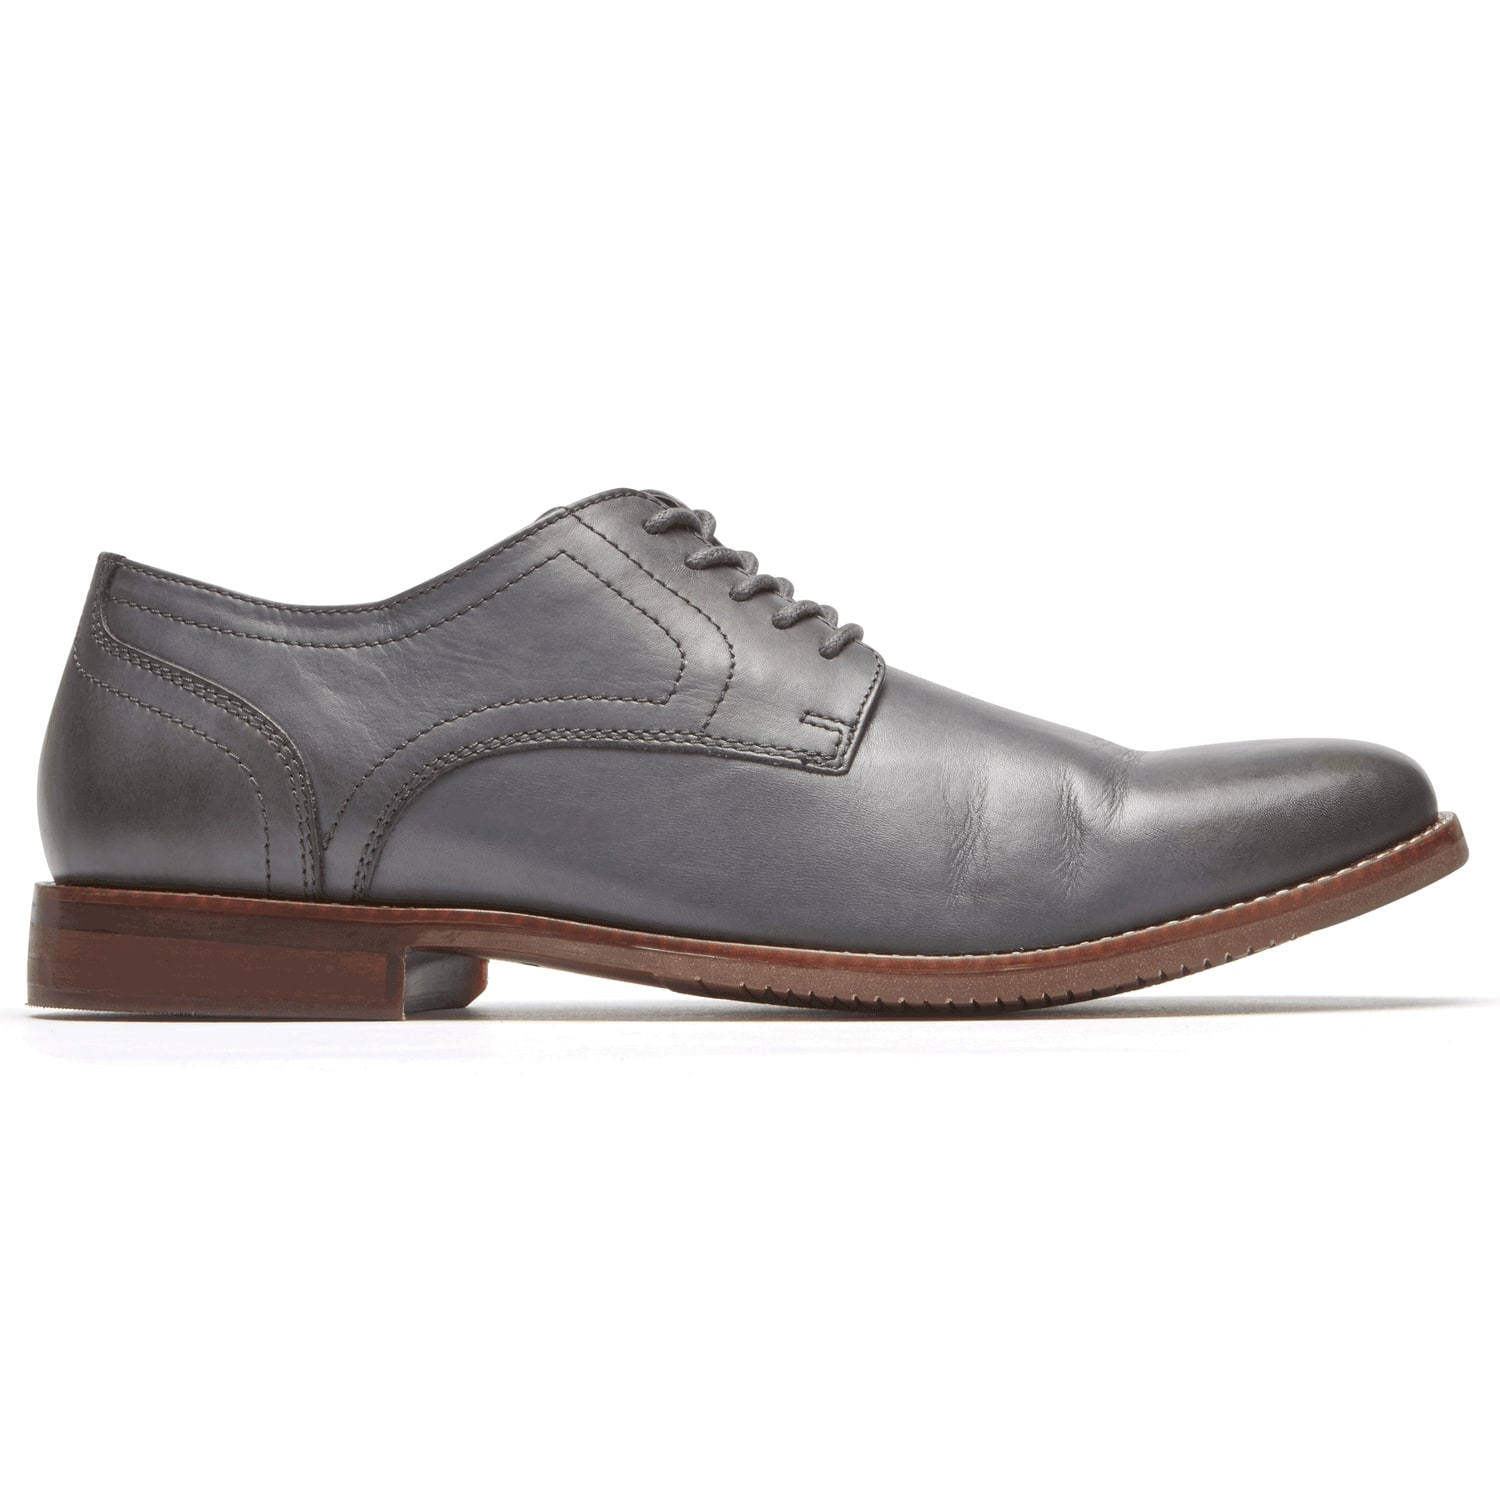 Rockport Flash Sale: Extra 31% Off Men's and Women's Shoes Starting from $27.59 + Free Shipping